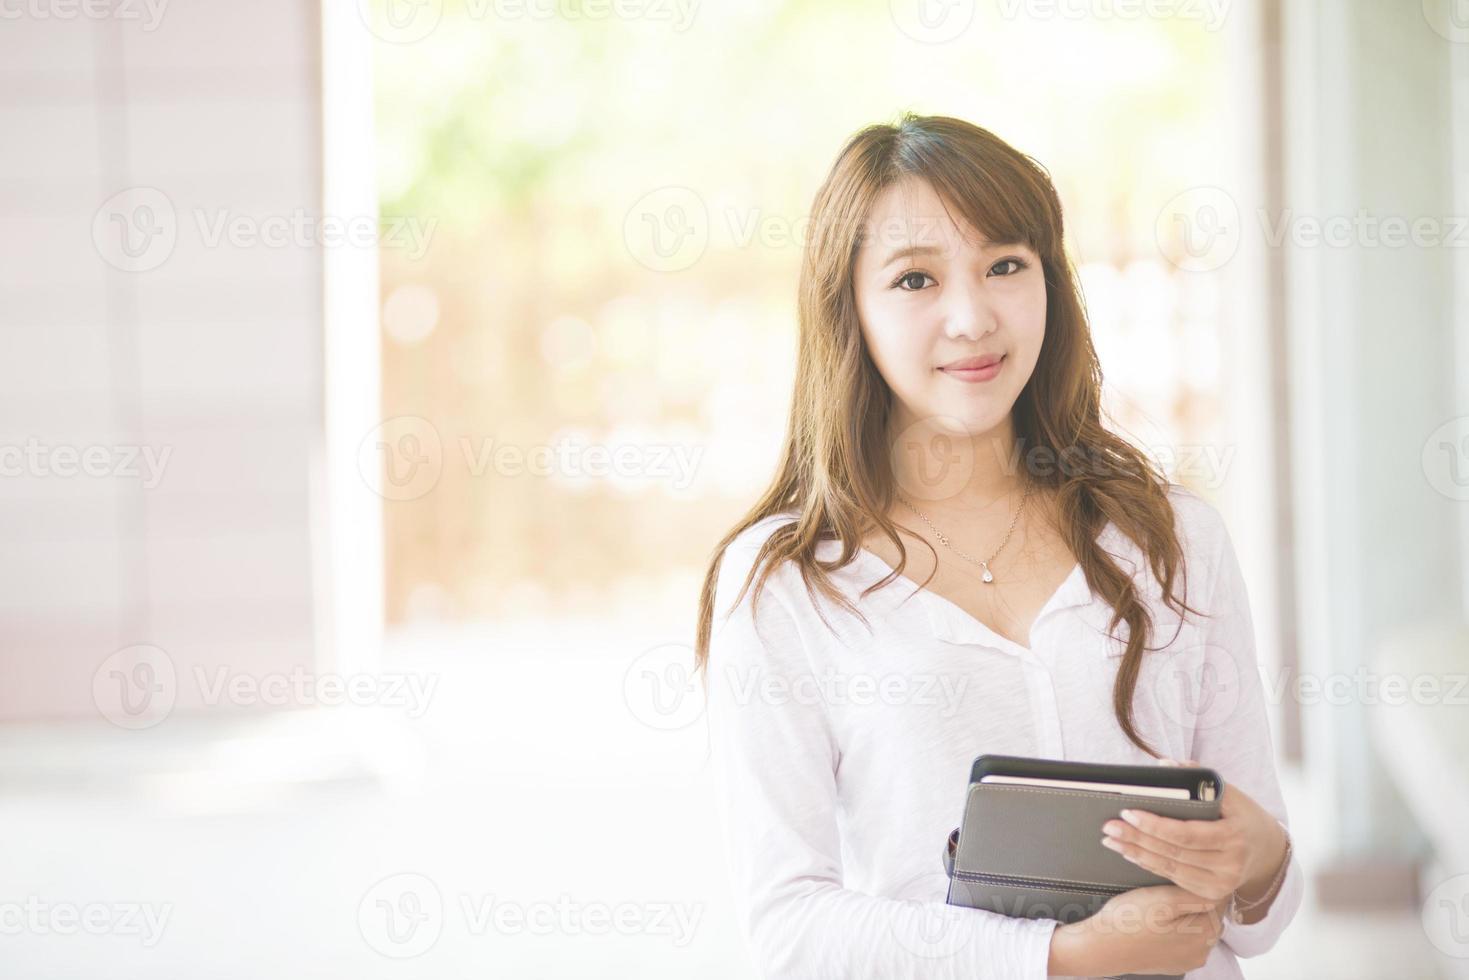 Asian female college or university student photo